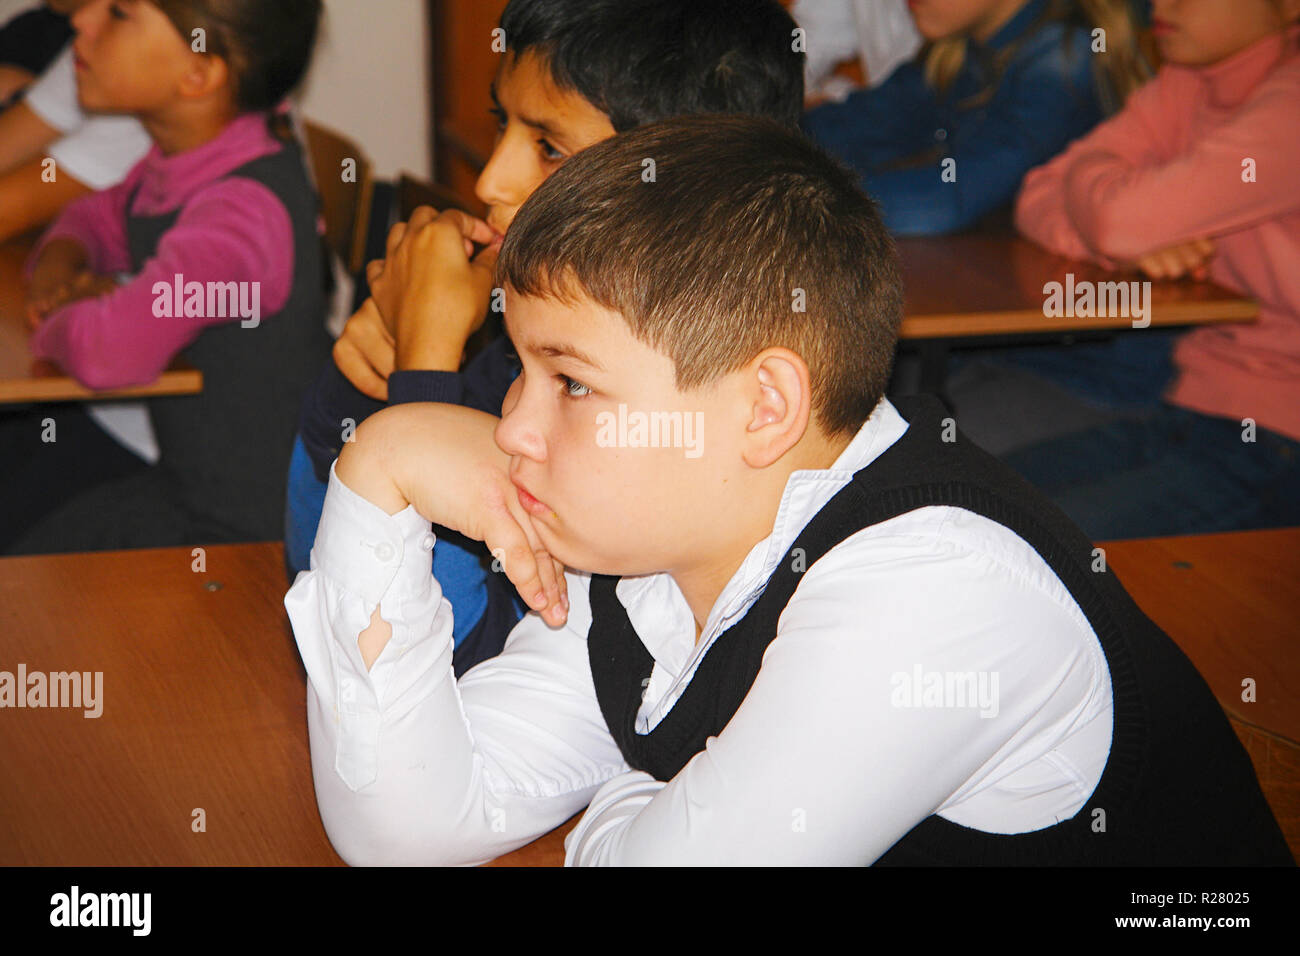 Schoolboy in class listening to the teacher - Stock Image